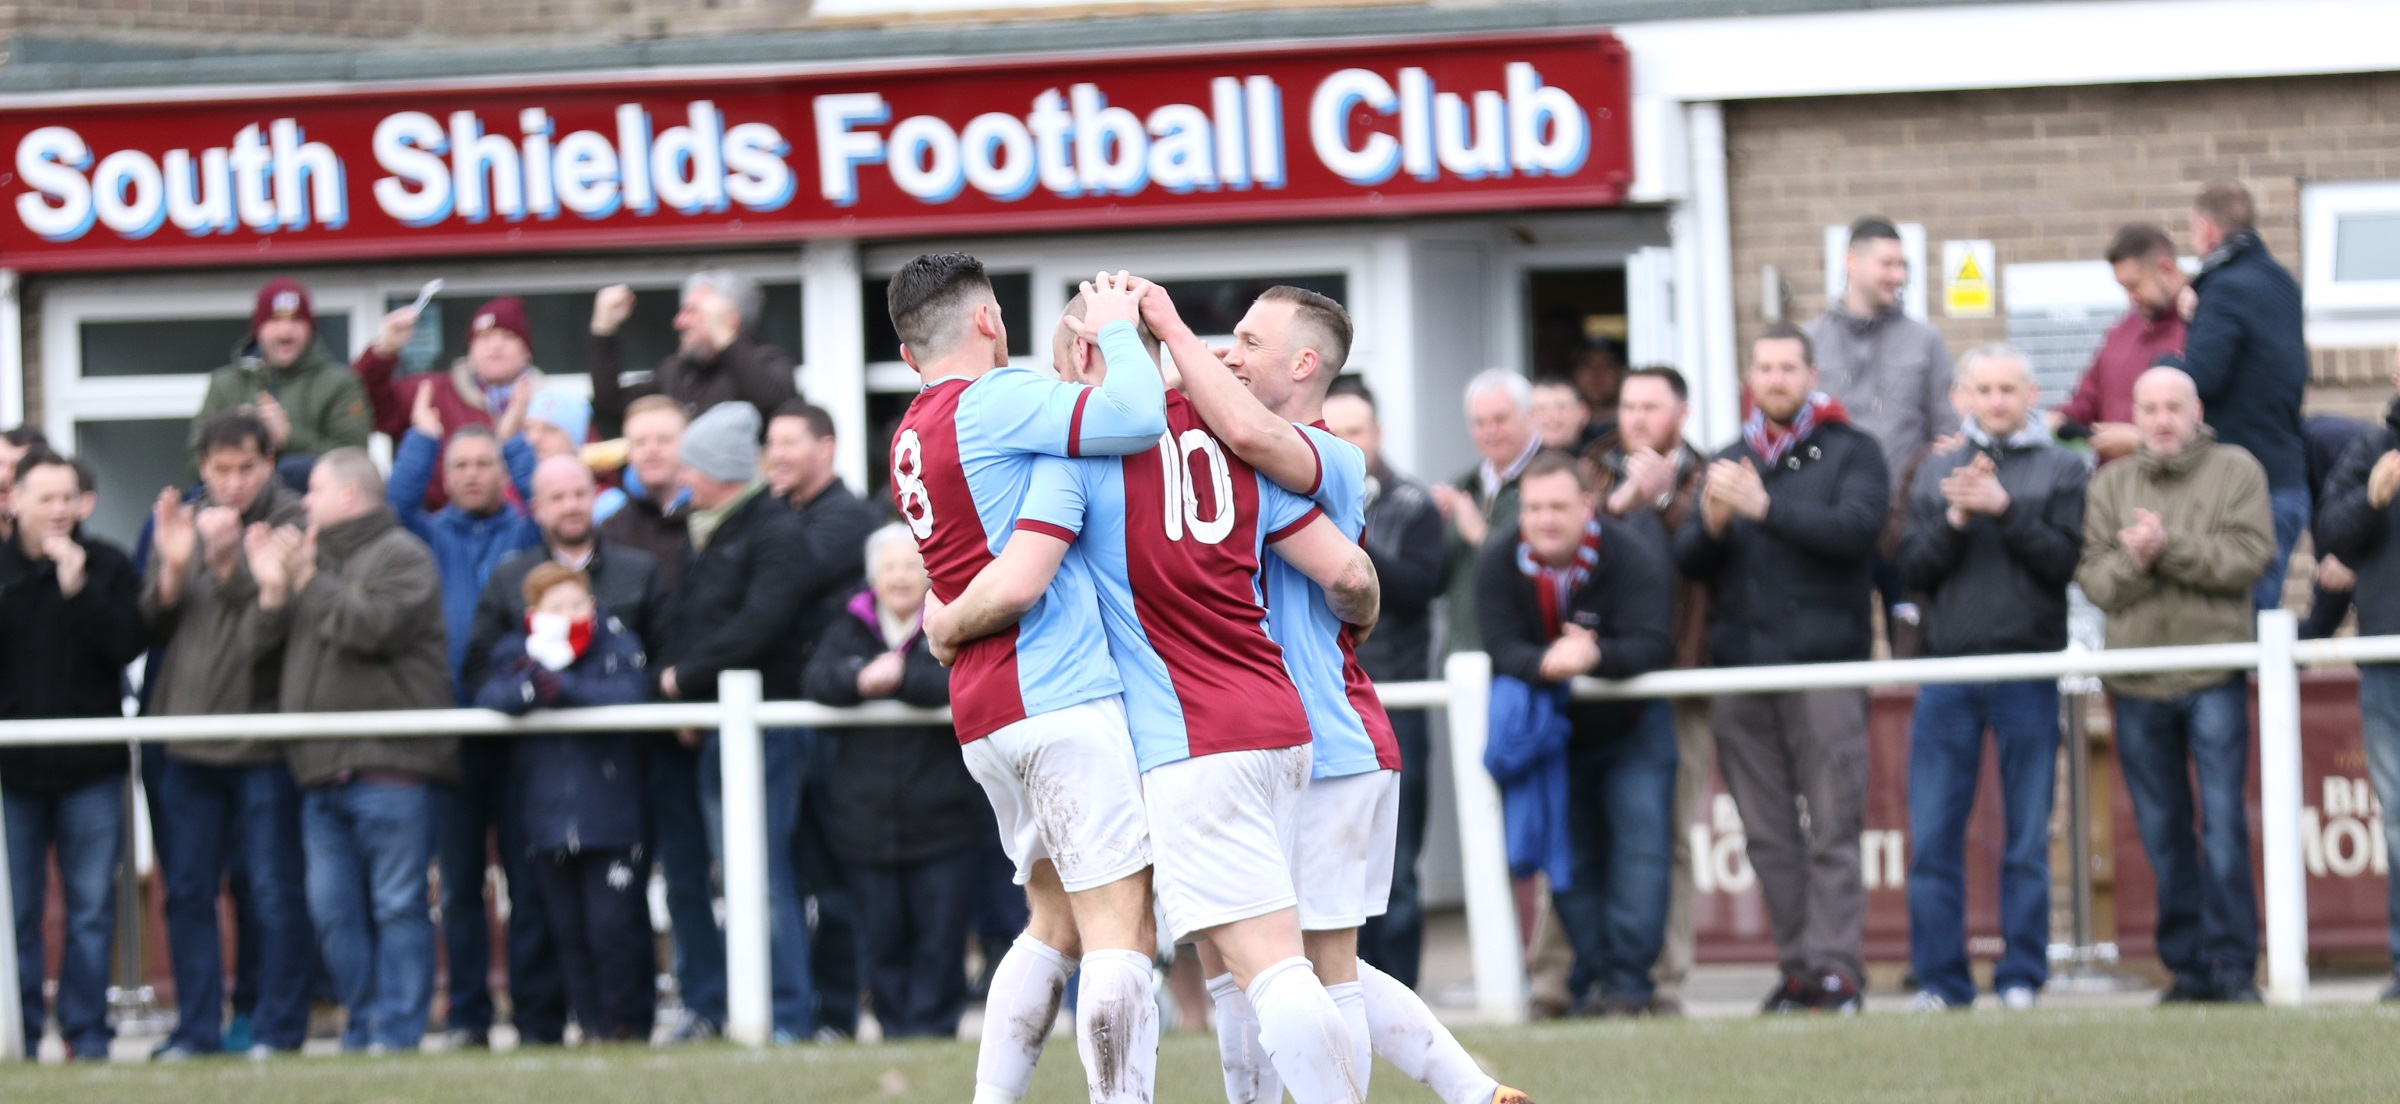 Match preview: Ryton & Crawcrook Albion vs South Shields